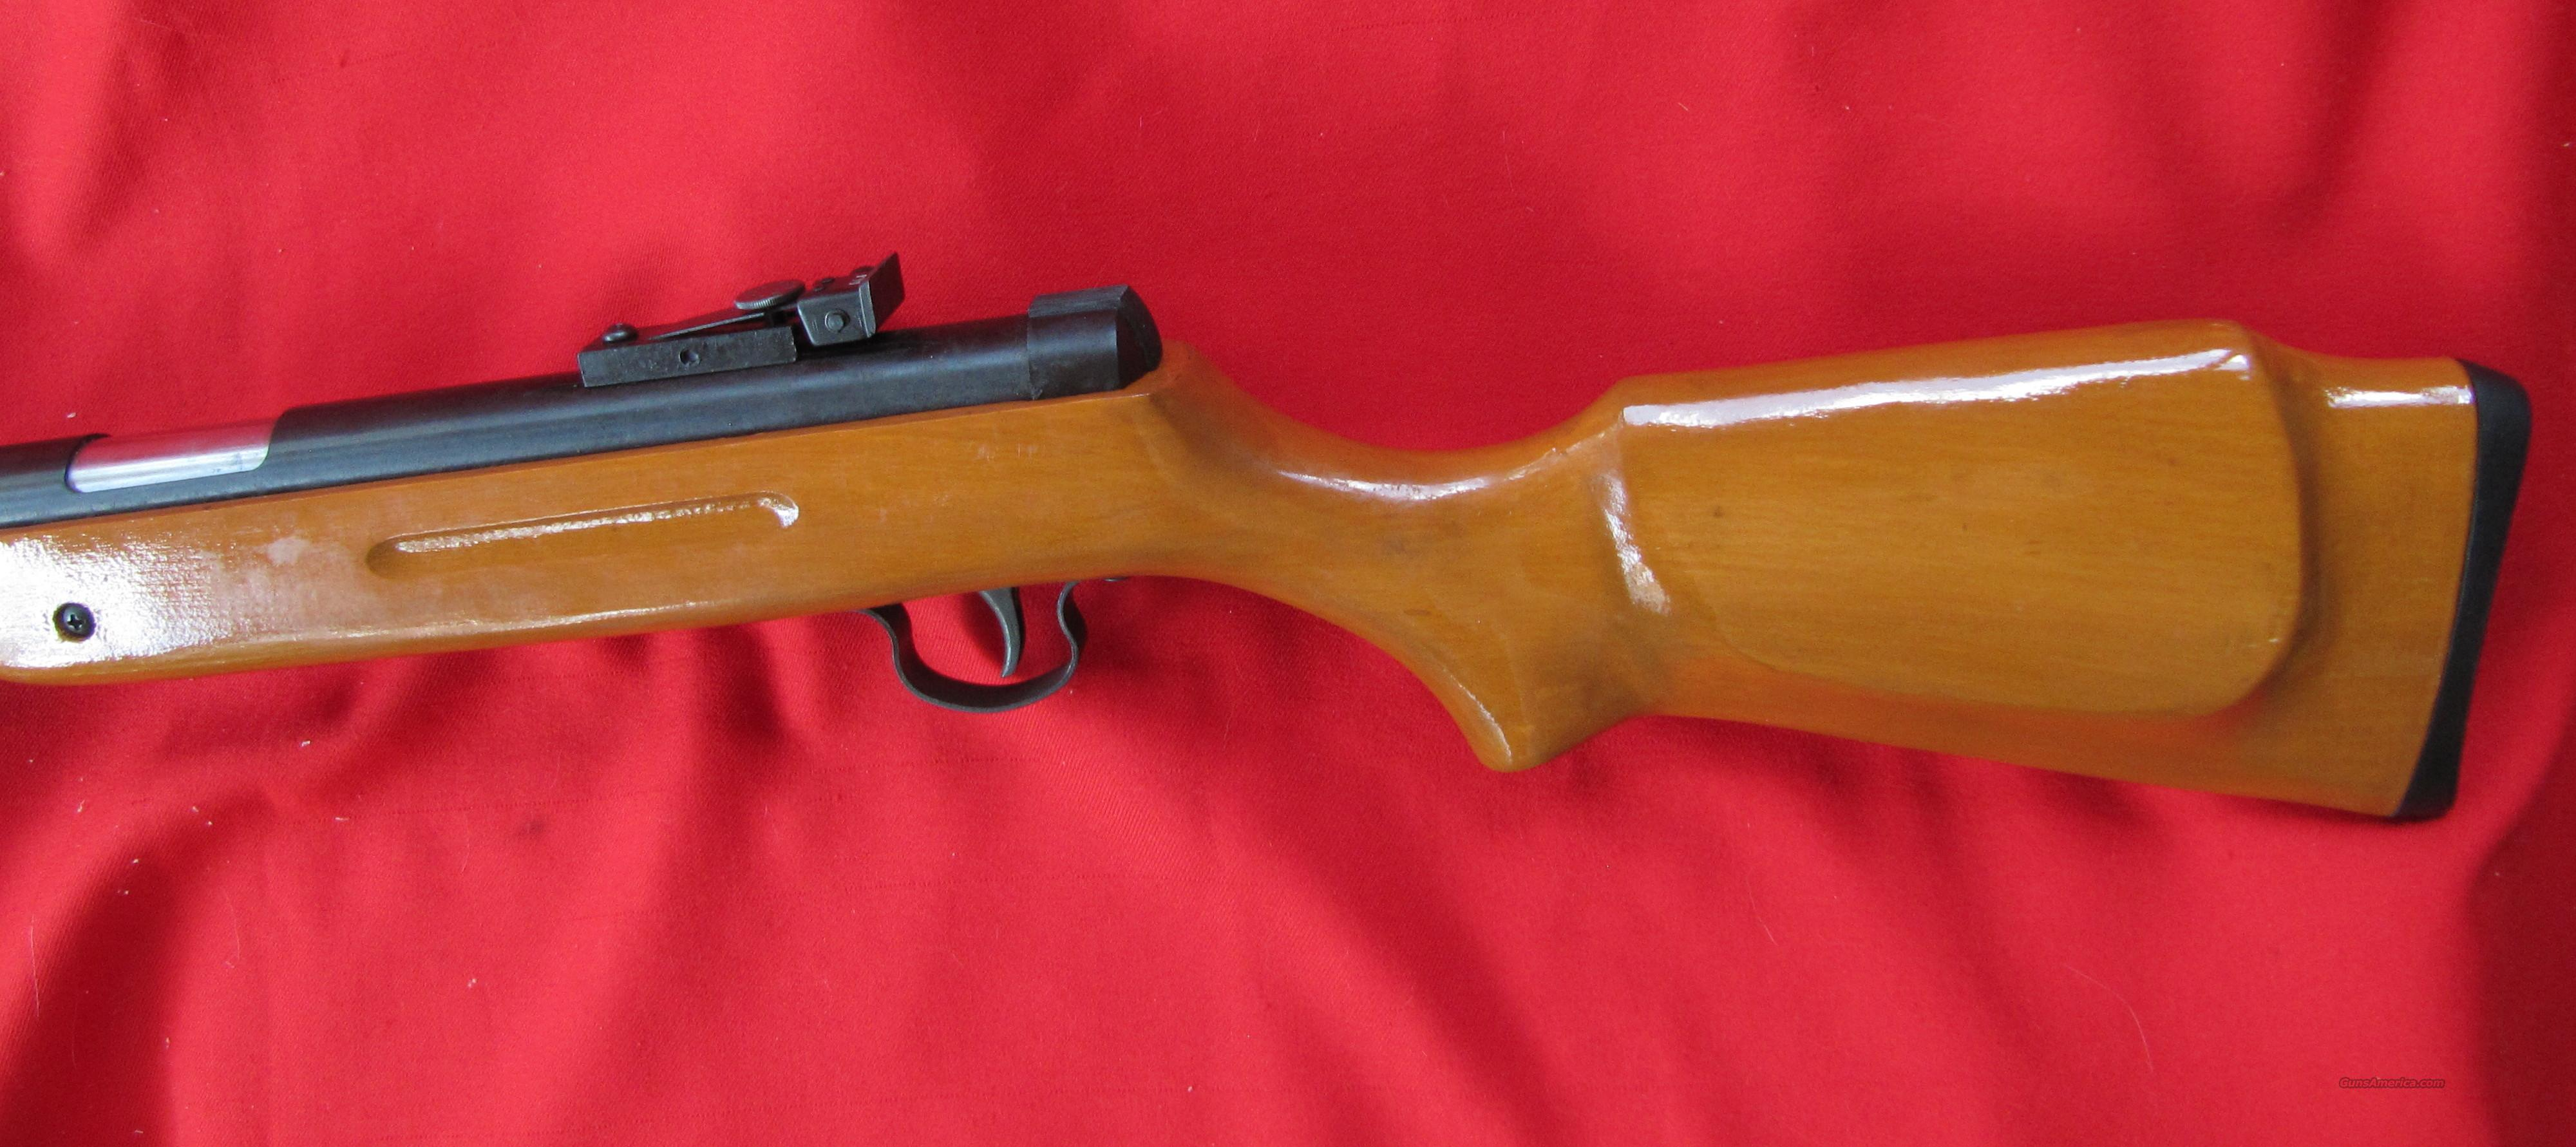 Chinese Sks Air Rifle Type B3 177 Trainer 4 5 For Sale